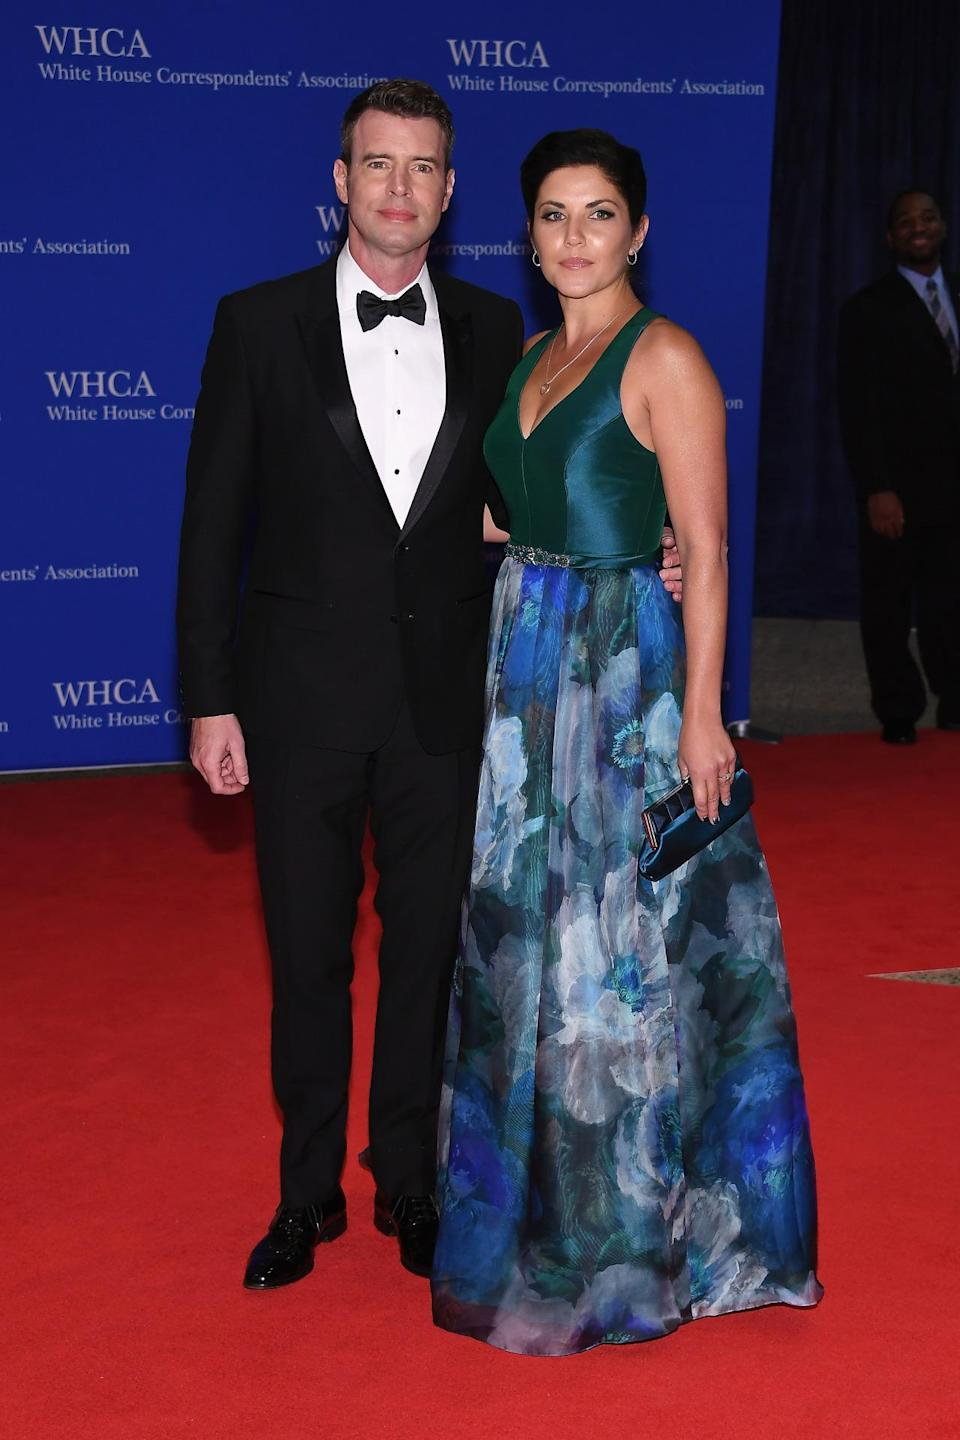 <p>Actors Scott Foley and Marika Dominczyk attend the 102nd White House Correspondents' Dinner, April 30.<i> (Photo: Larry Busacca/Getty Images)</i></p>